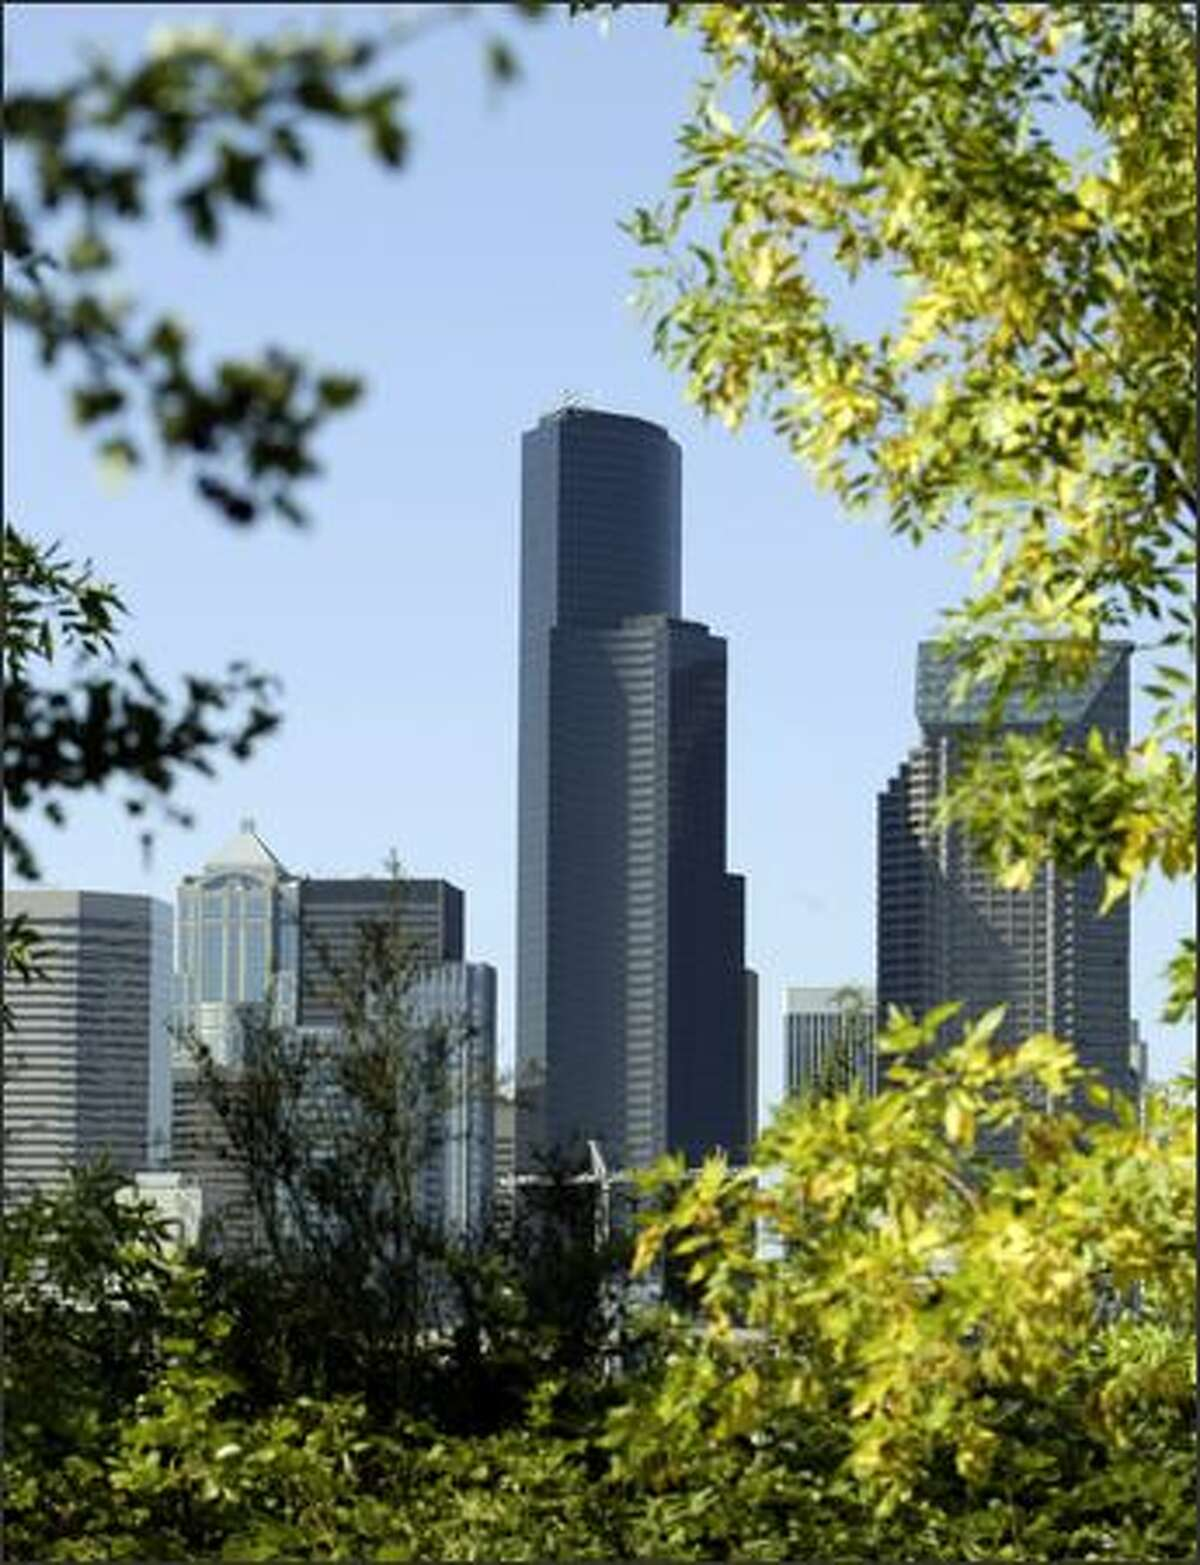 Trees at Dr. Jose Rizal Park on 12th Avenue South frame the downtown Seattle skyline Tuesday.